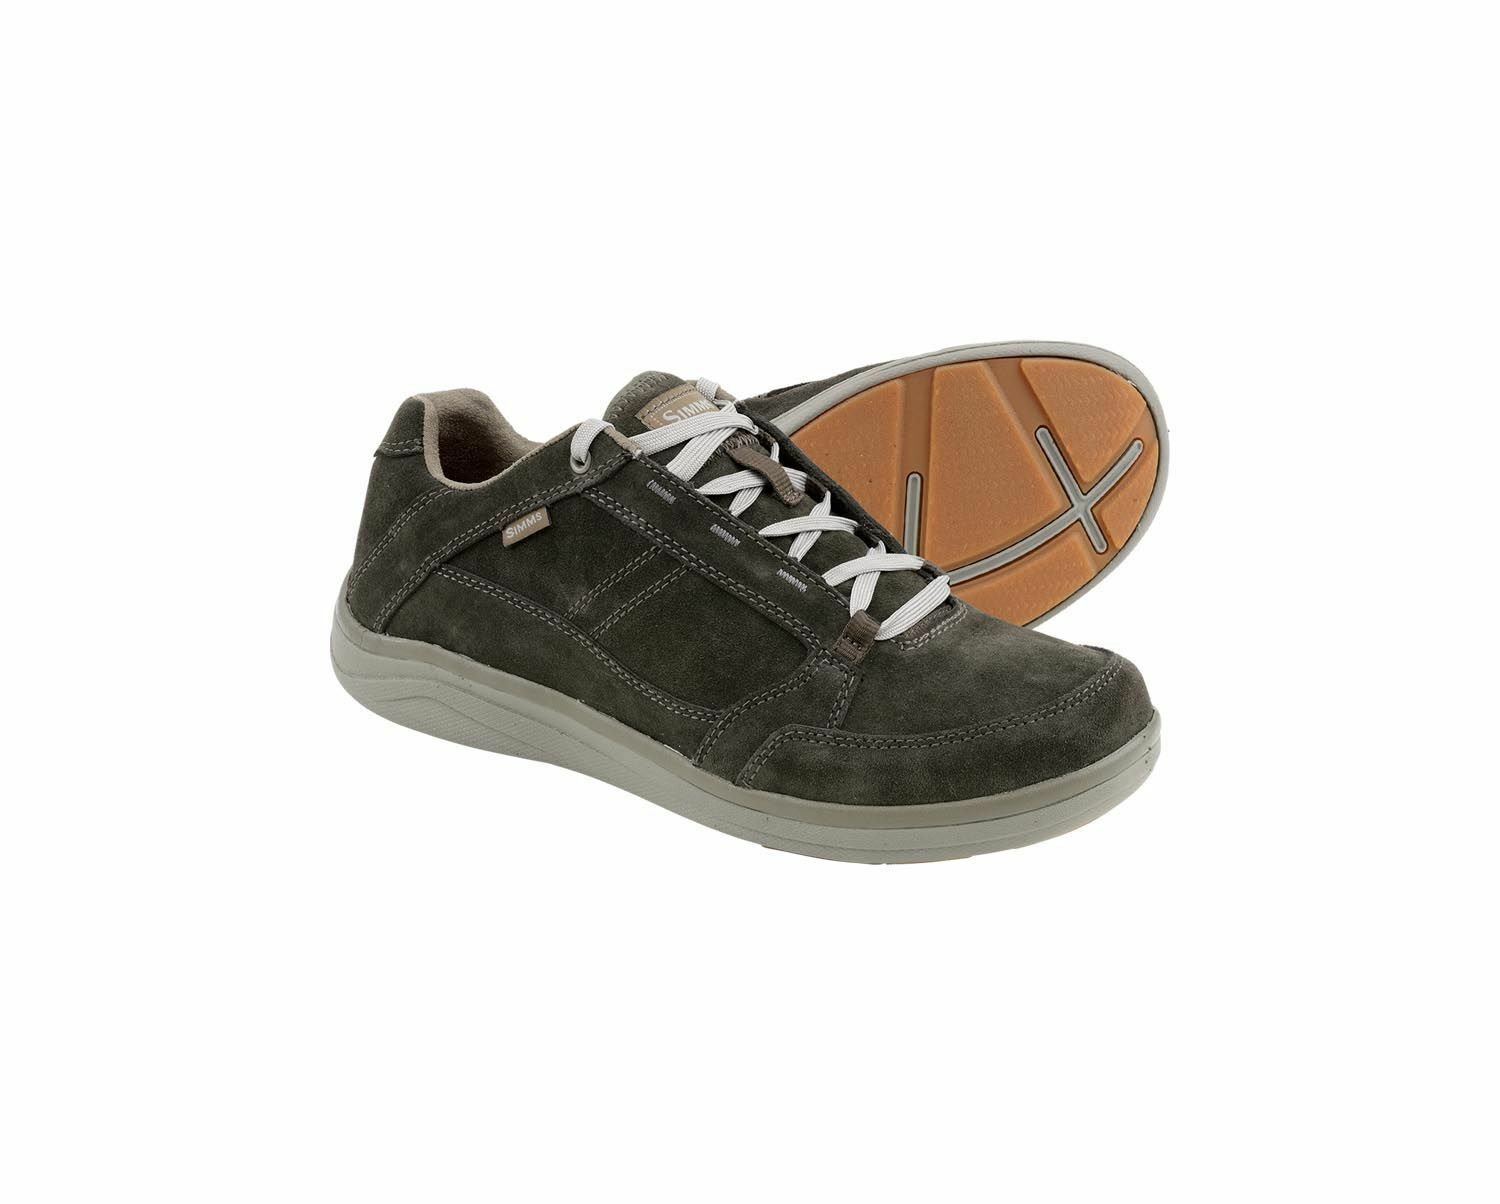 Simms Westshore  Leather shoes Dark Olive - Size 11.5 -CLOSEOUT  beautiful